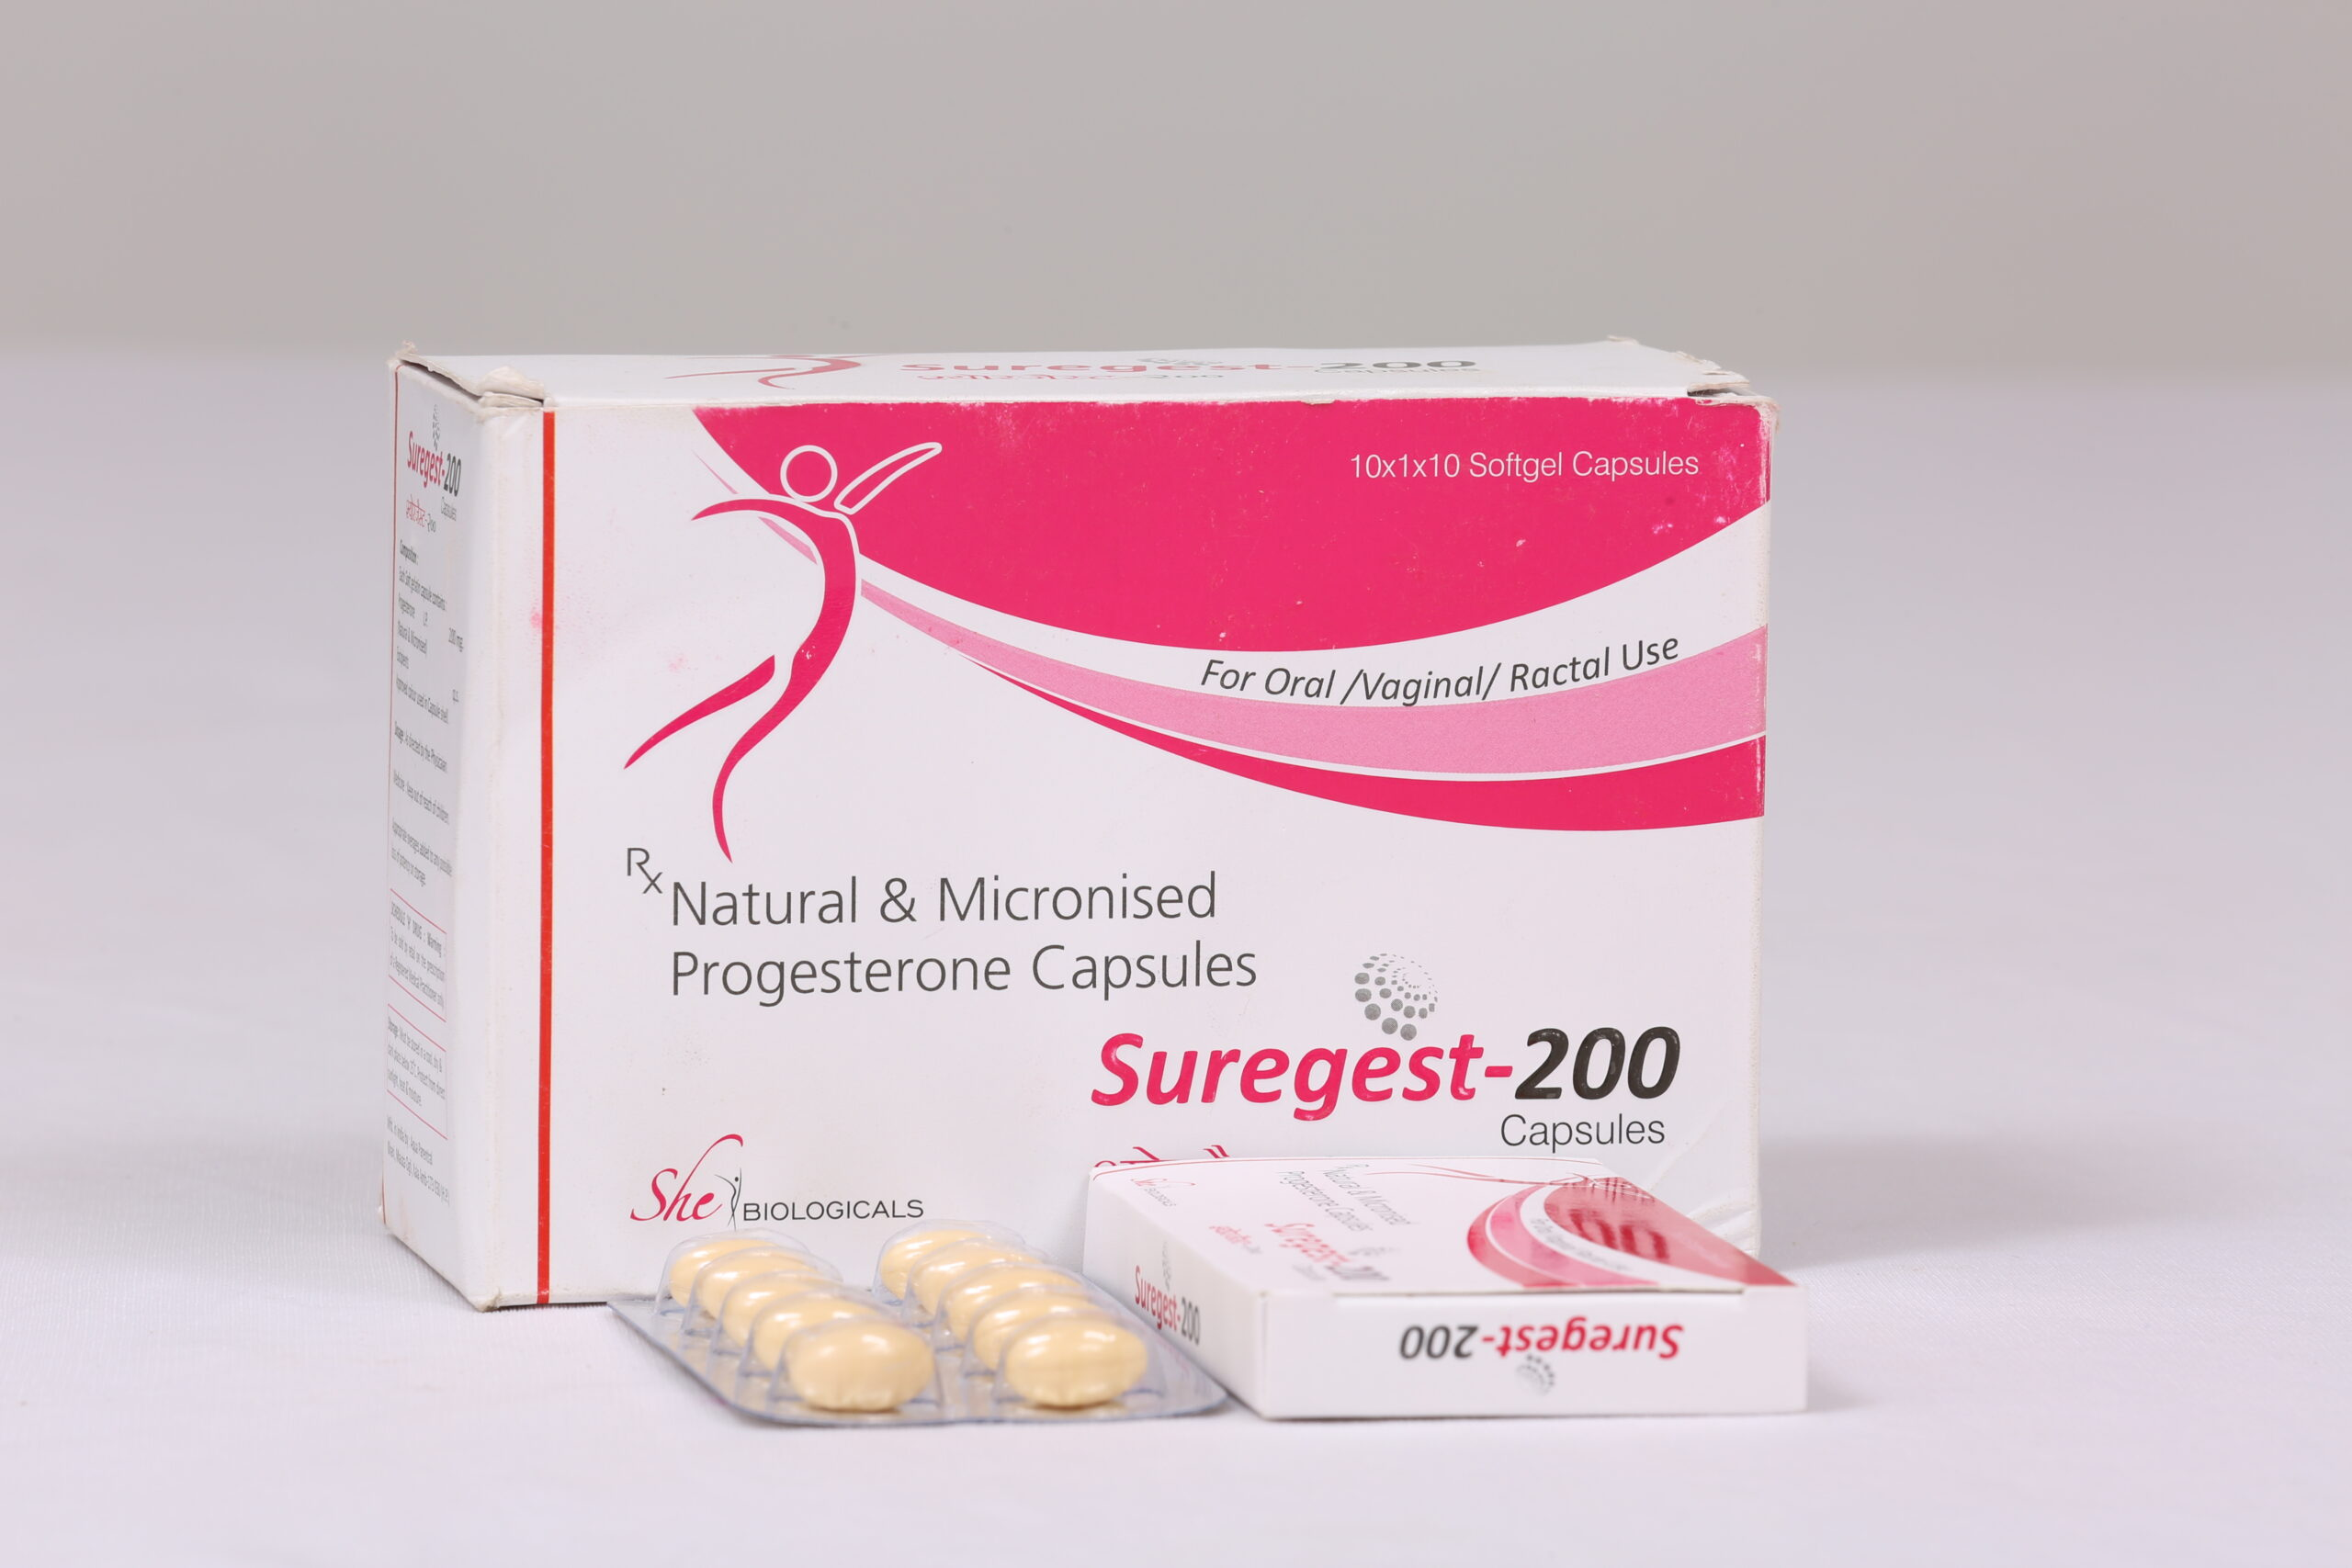 SUREGEST-200 (Natural Micronised Progestrone 200 mg)